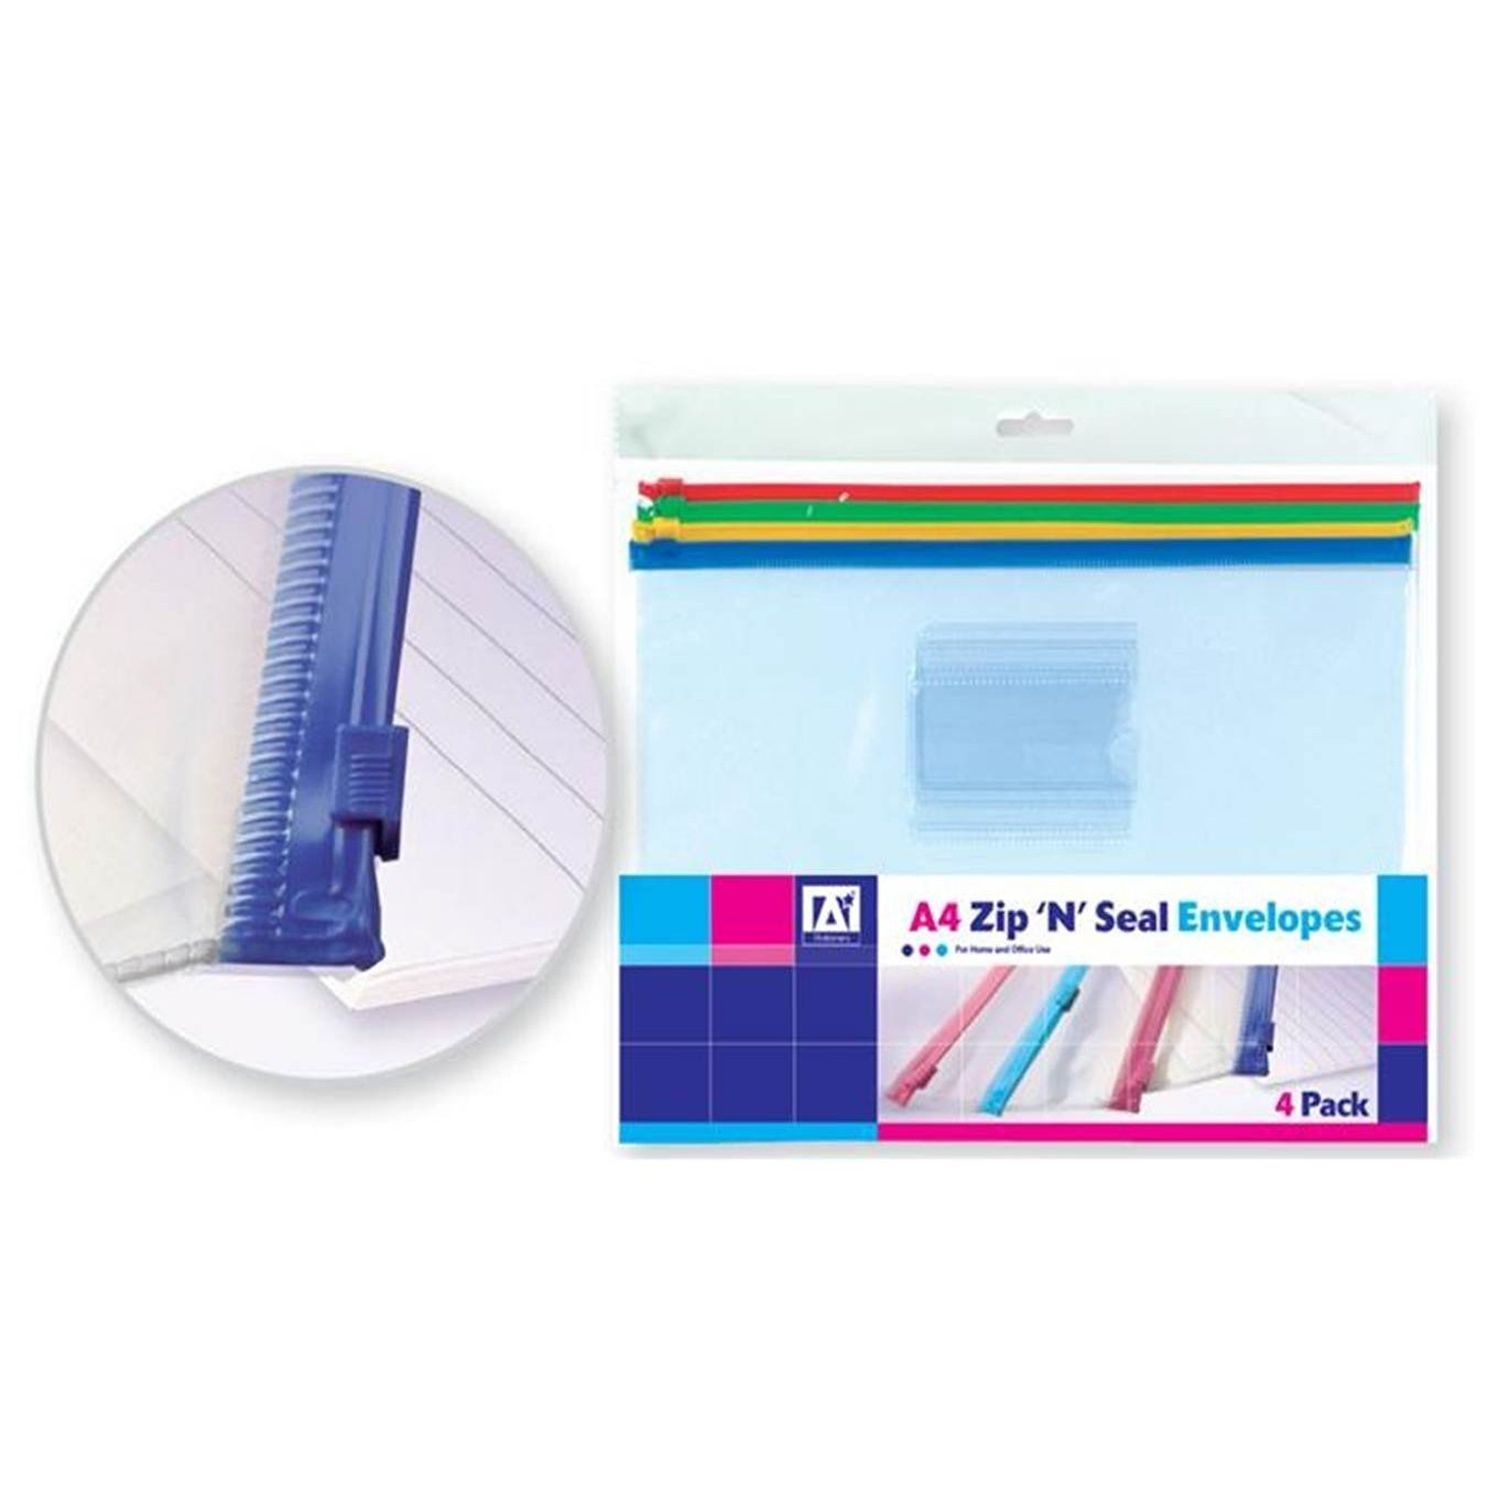 A4 Zip and Seal Plastic Envelopes Pack of 4